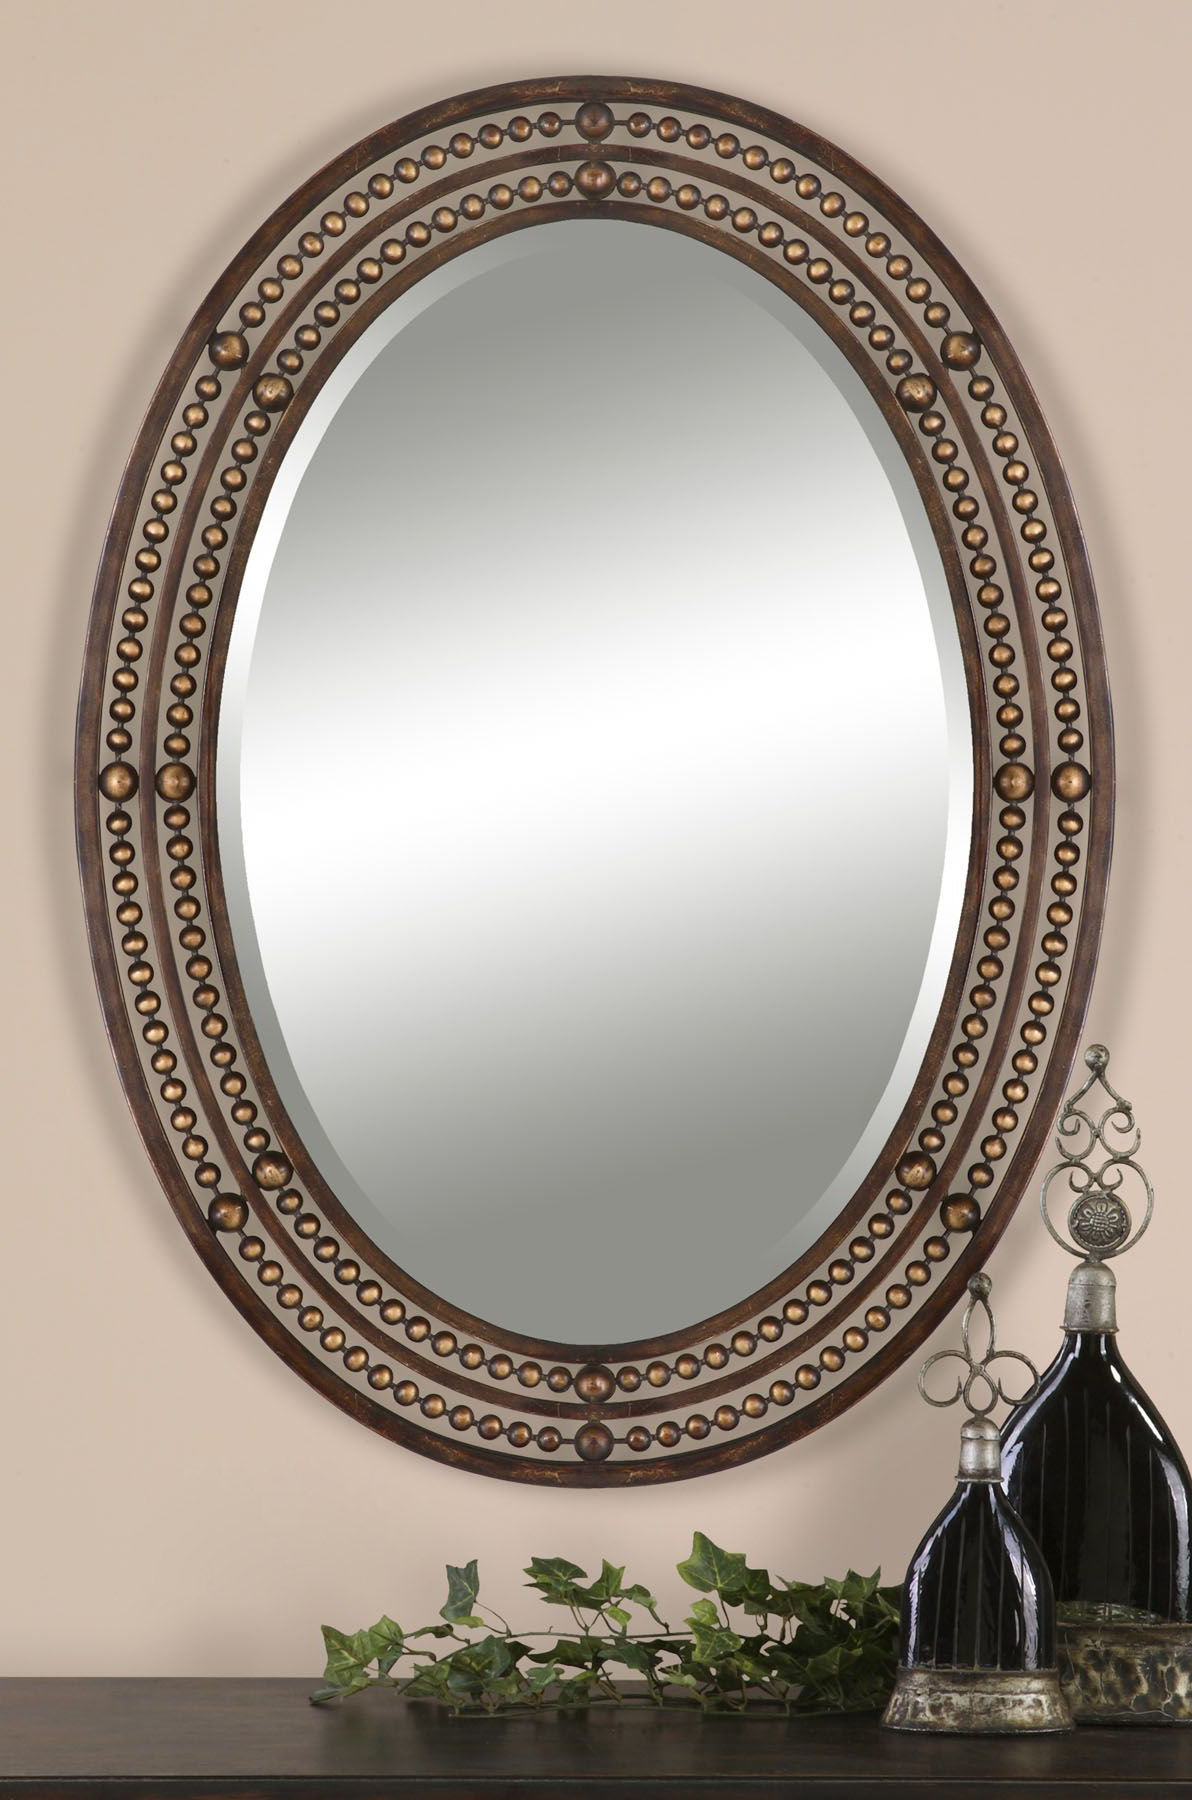 Leeper Oval Wall Mirror Inside Popular Pfister Oval Wood Wall Mirrors (View 11 of 20)